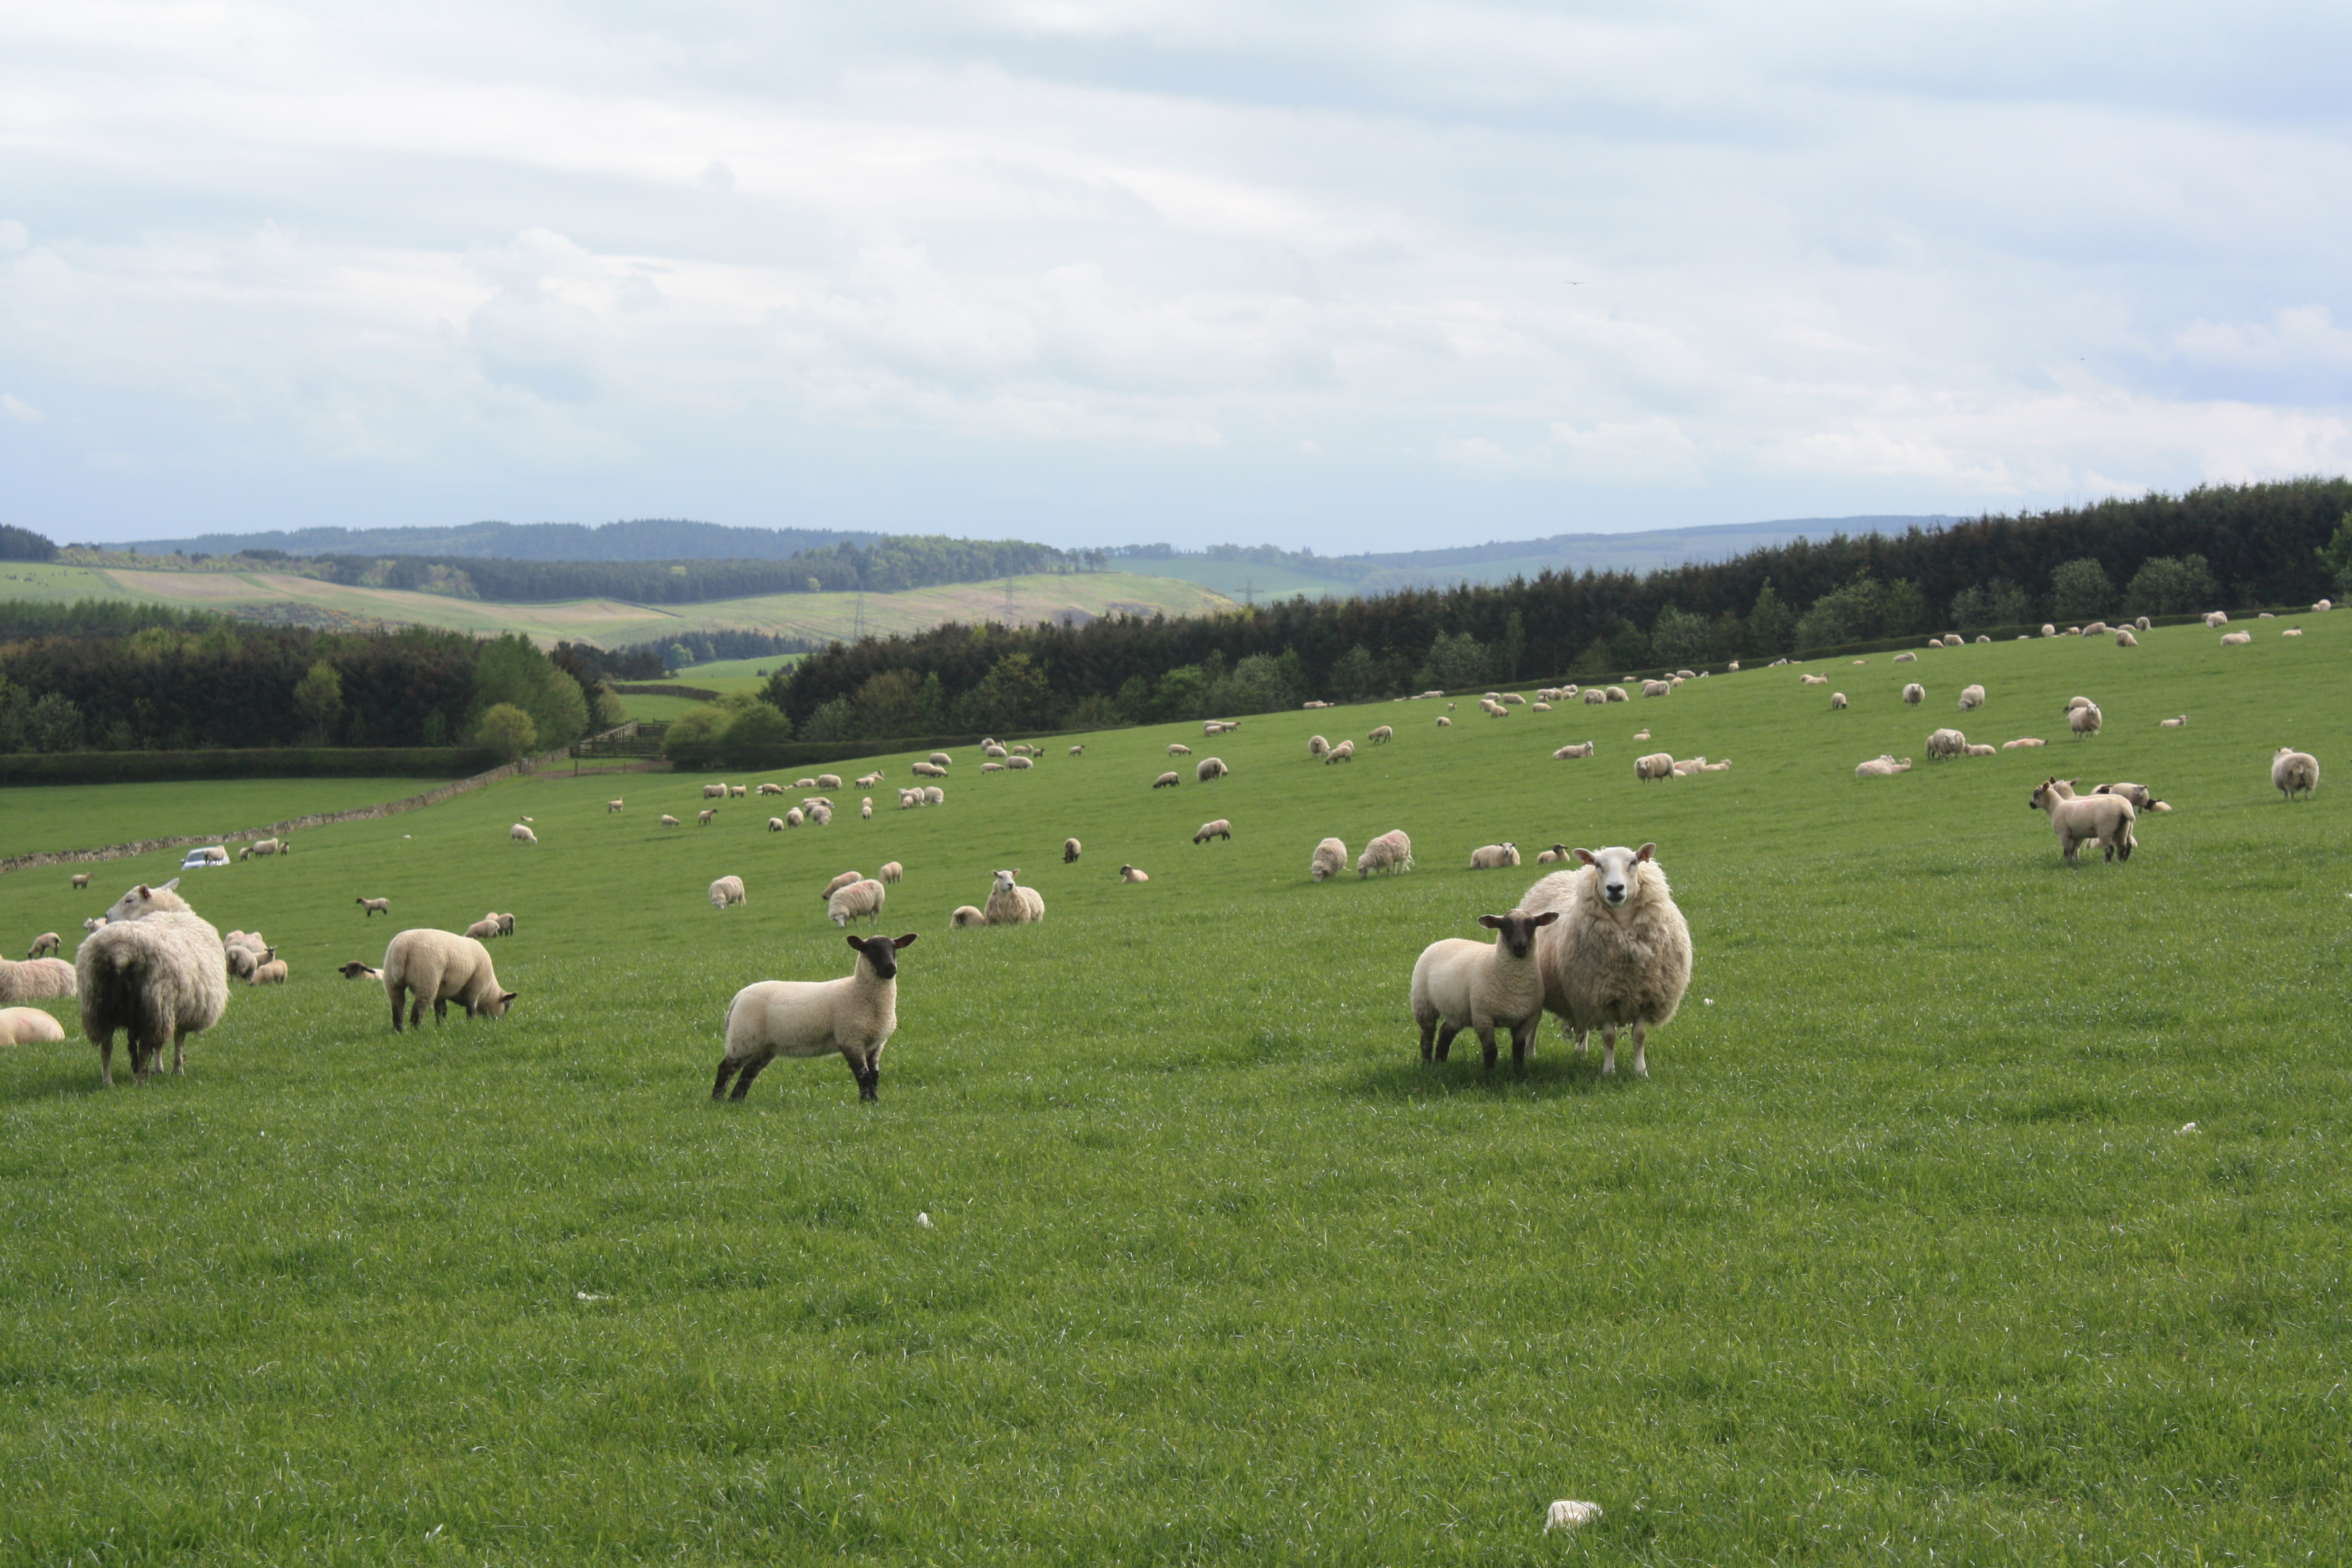 New season lamb prices are up 8% on last year